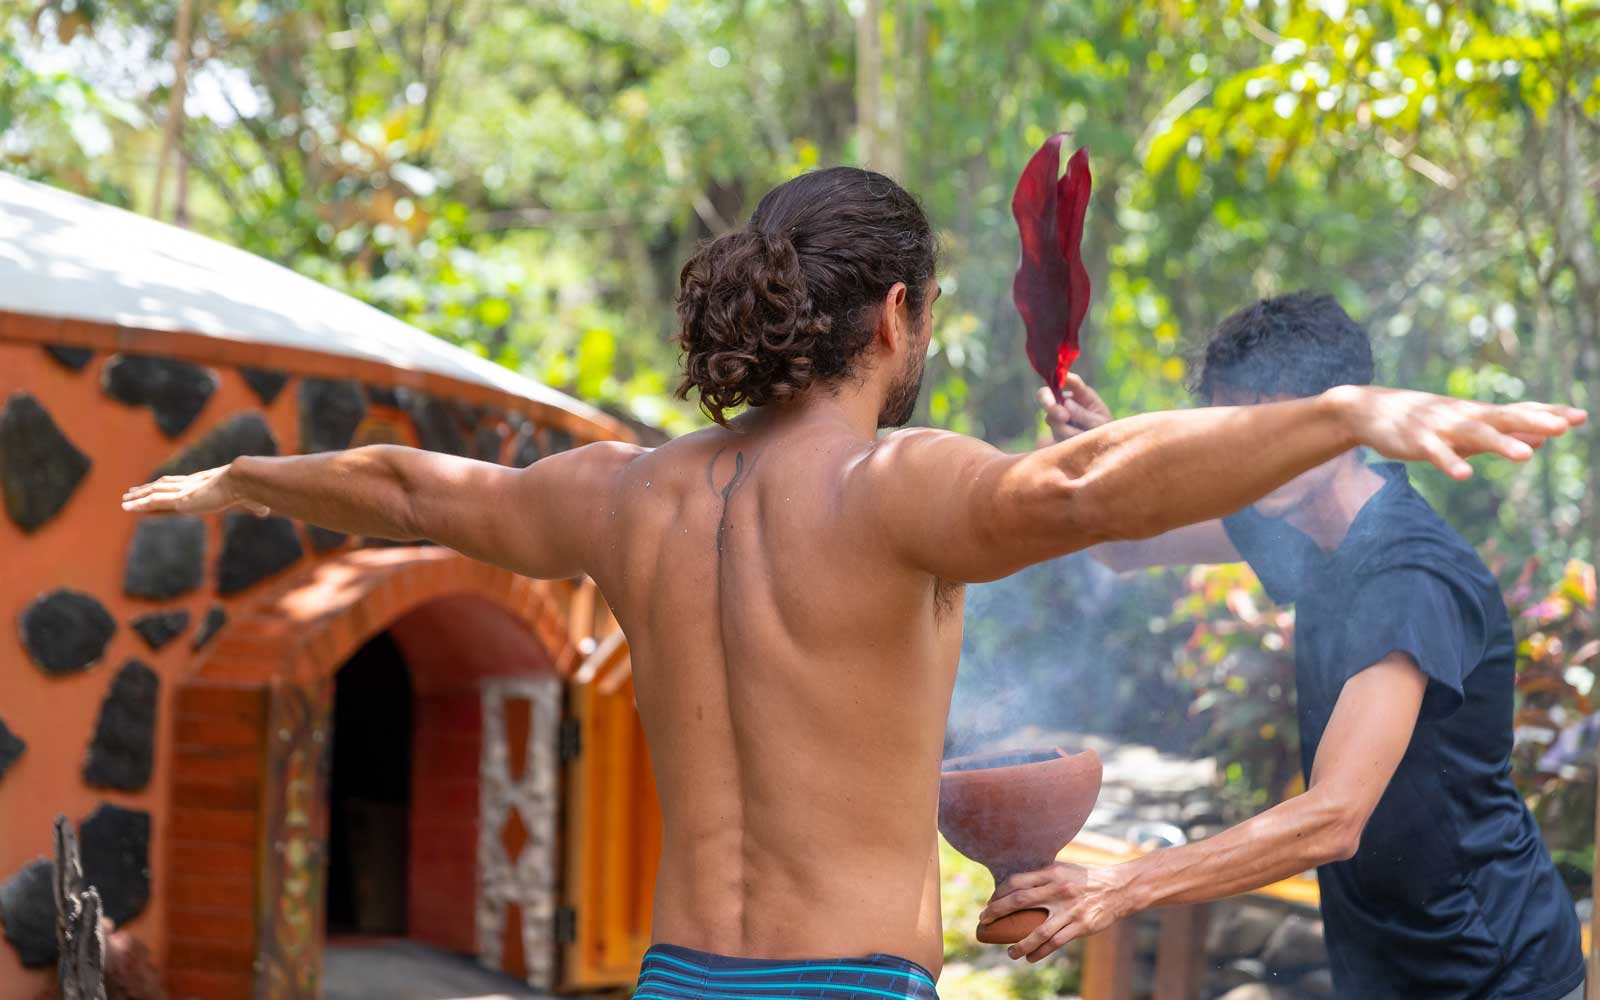 Sweat ceremony at Kinkára, Costa Rica